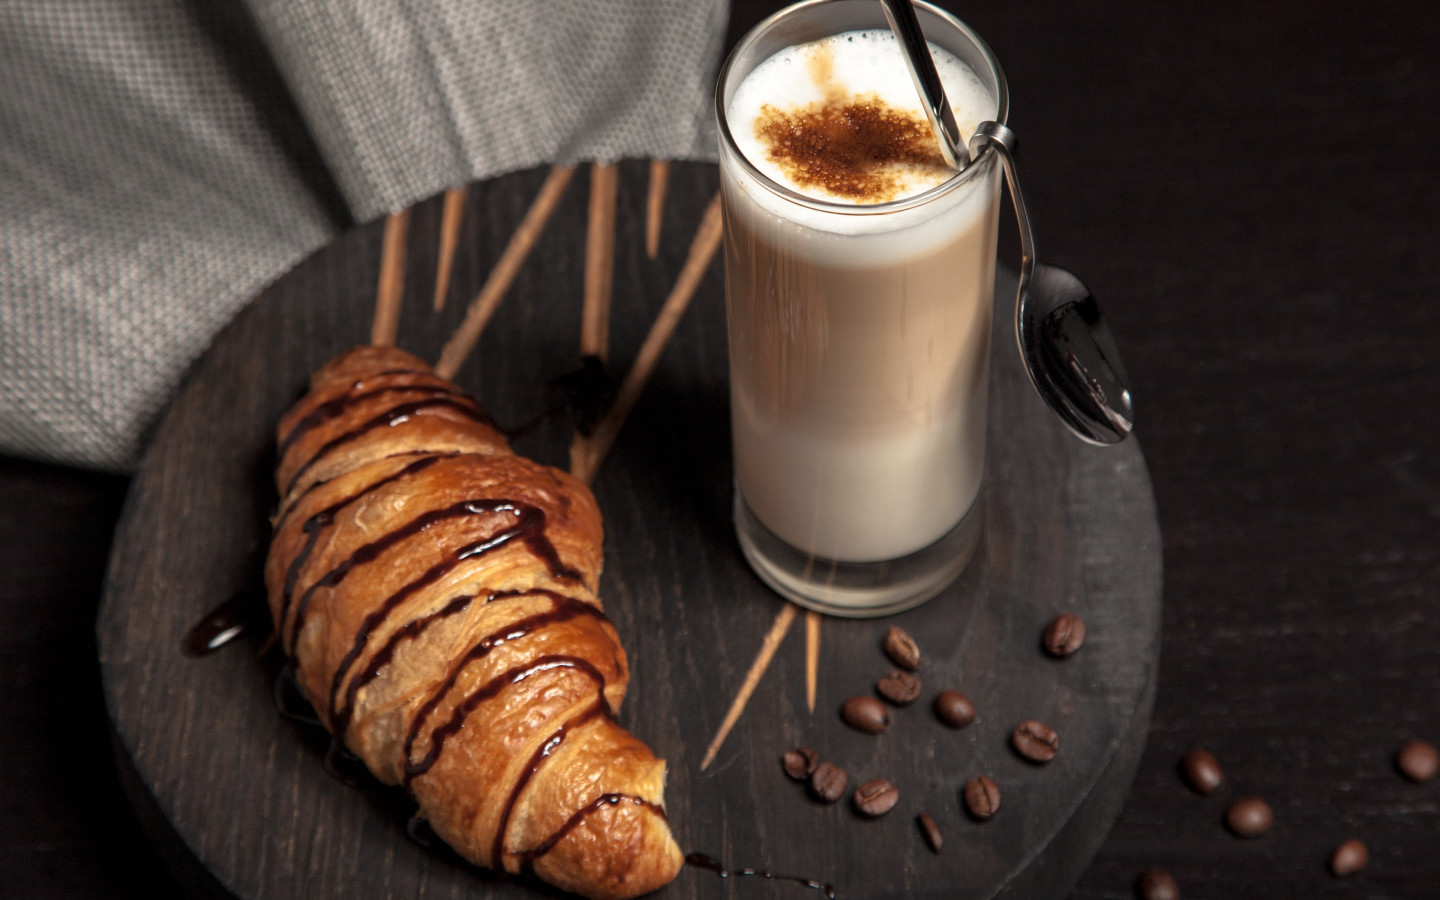 Cappuccino and chocolate croissant wallpaper 1440x900